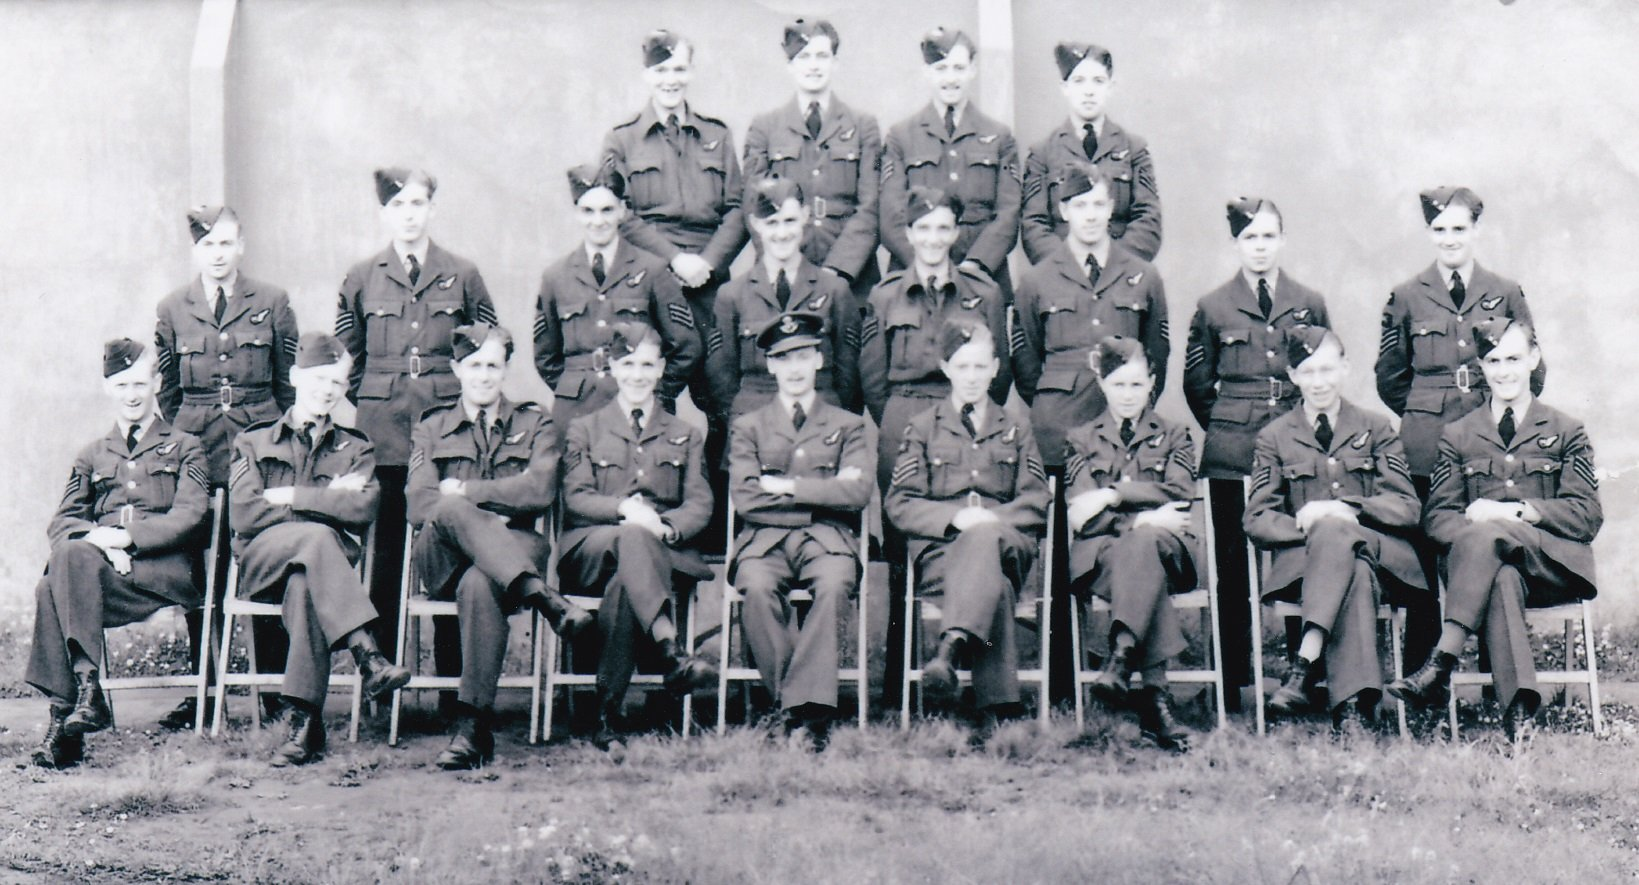 Training photo, possibly on award of their wing - Leslie is front row, 1st on the left